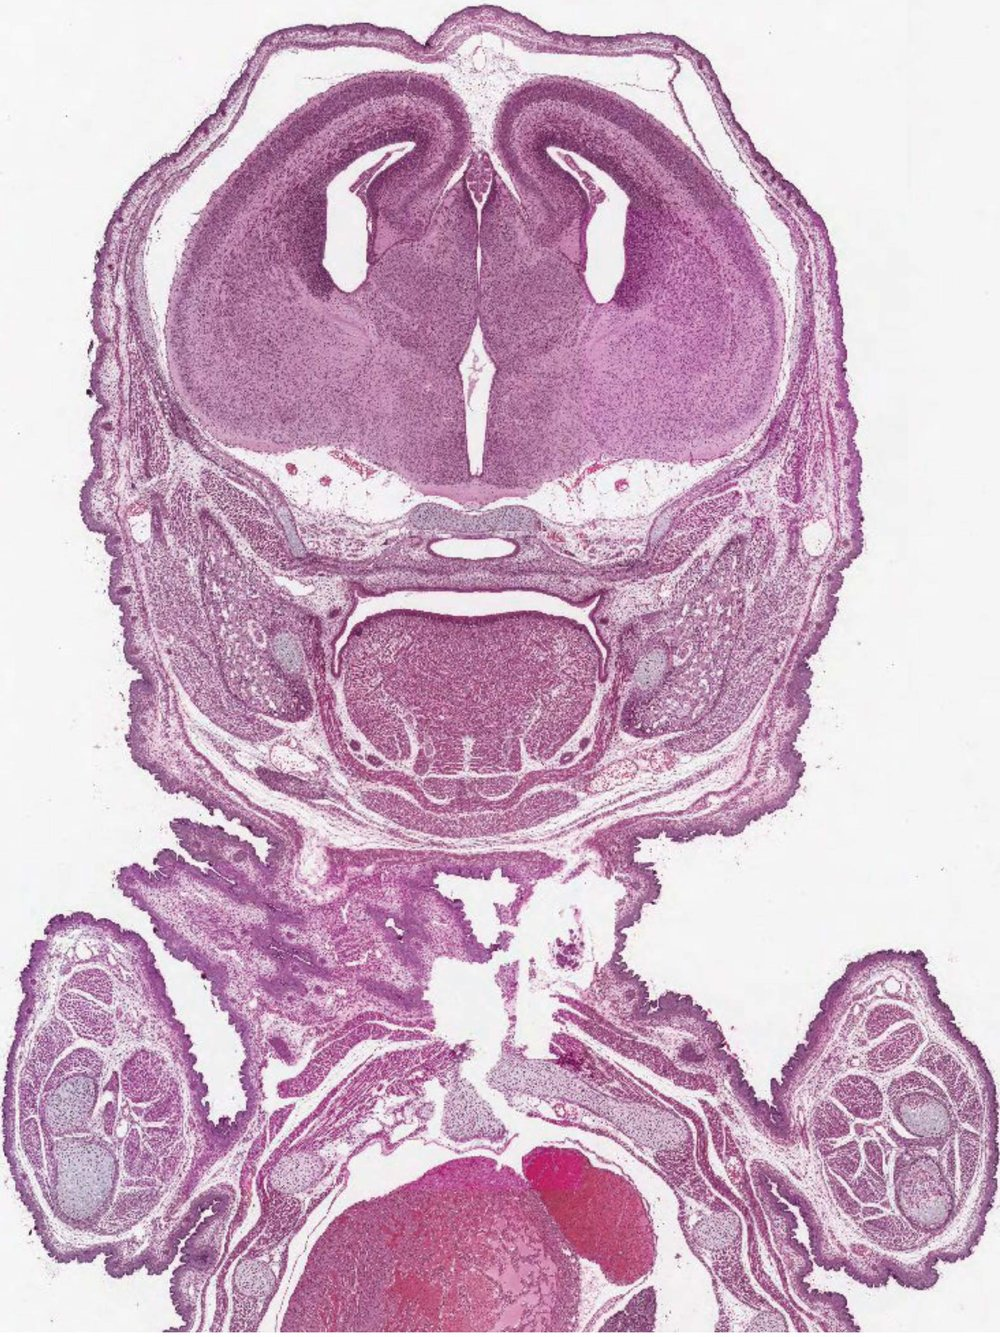 Embryo images 2.jpg